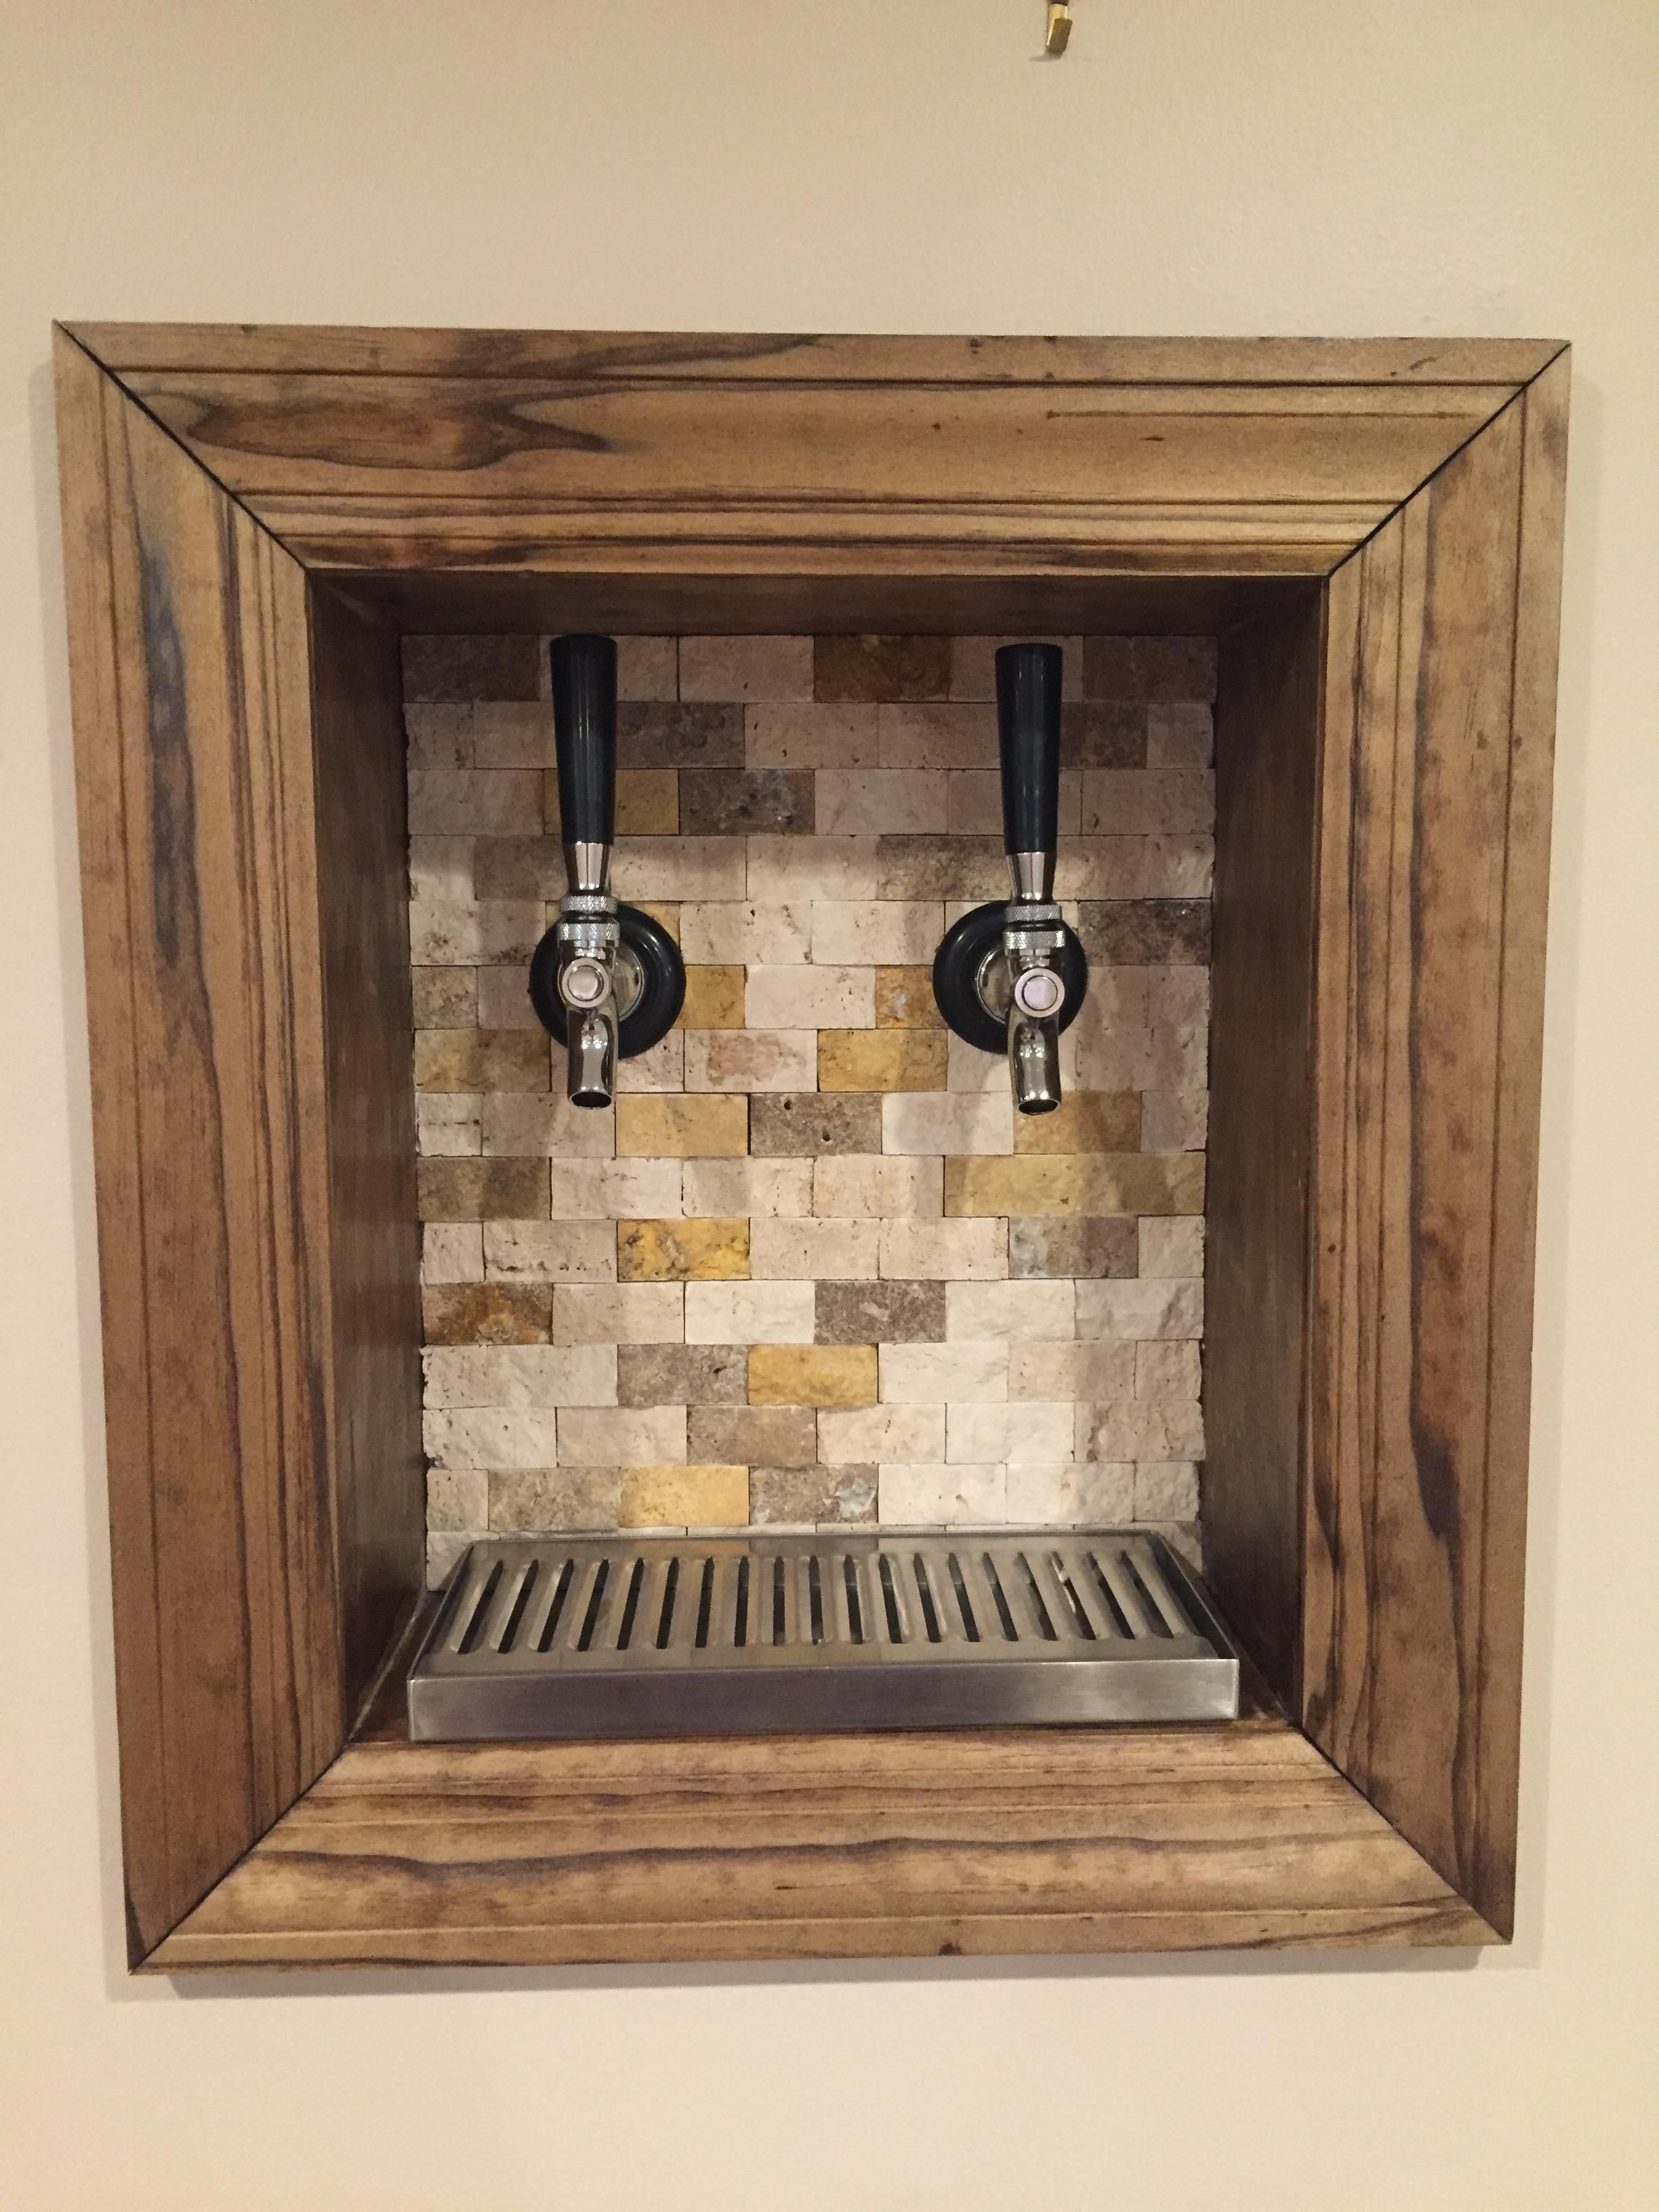 In Wall Beer Tap V1 0 Imgur Beer Taps Bars For Home Wall Bar